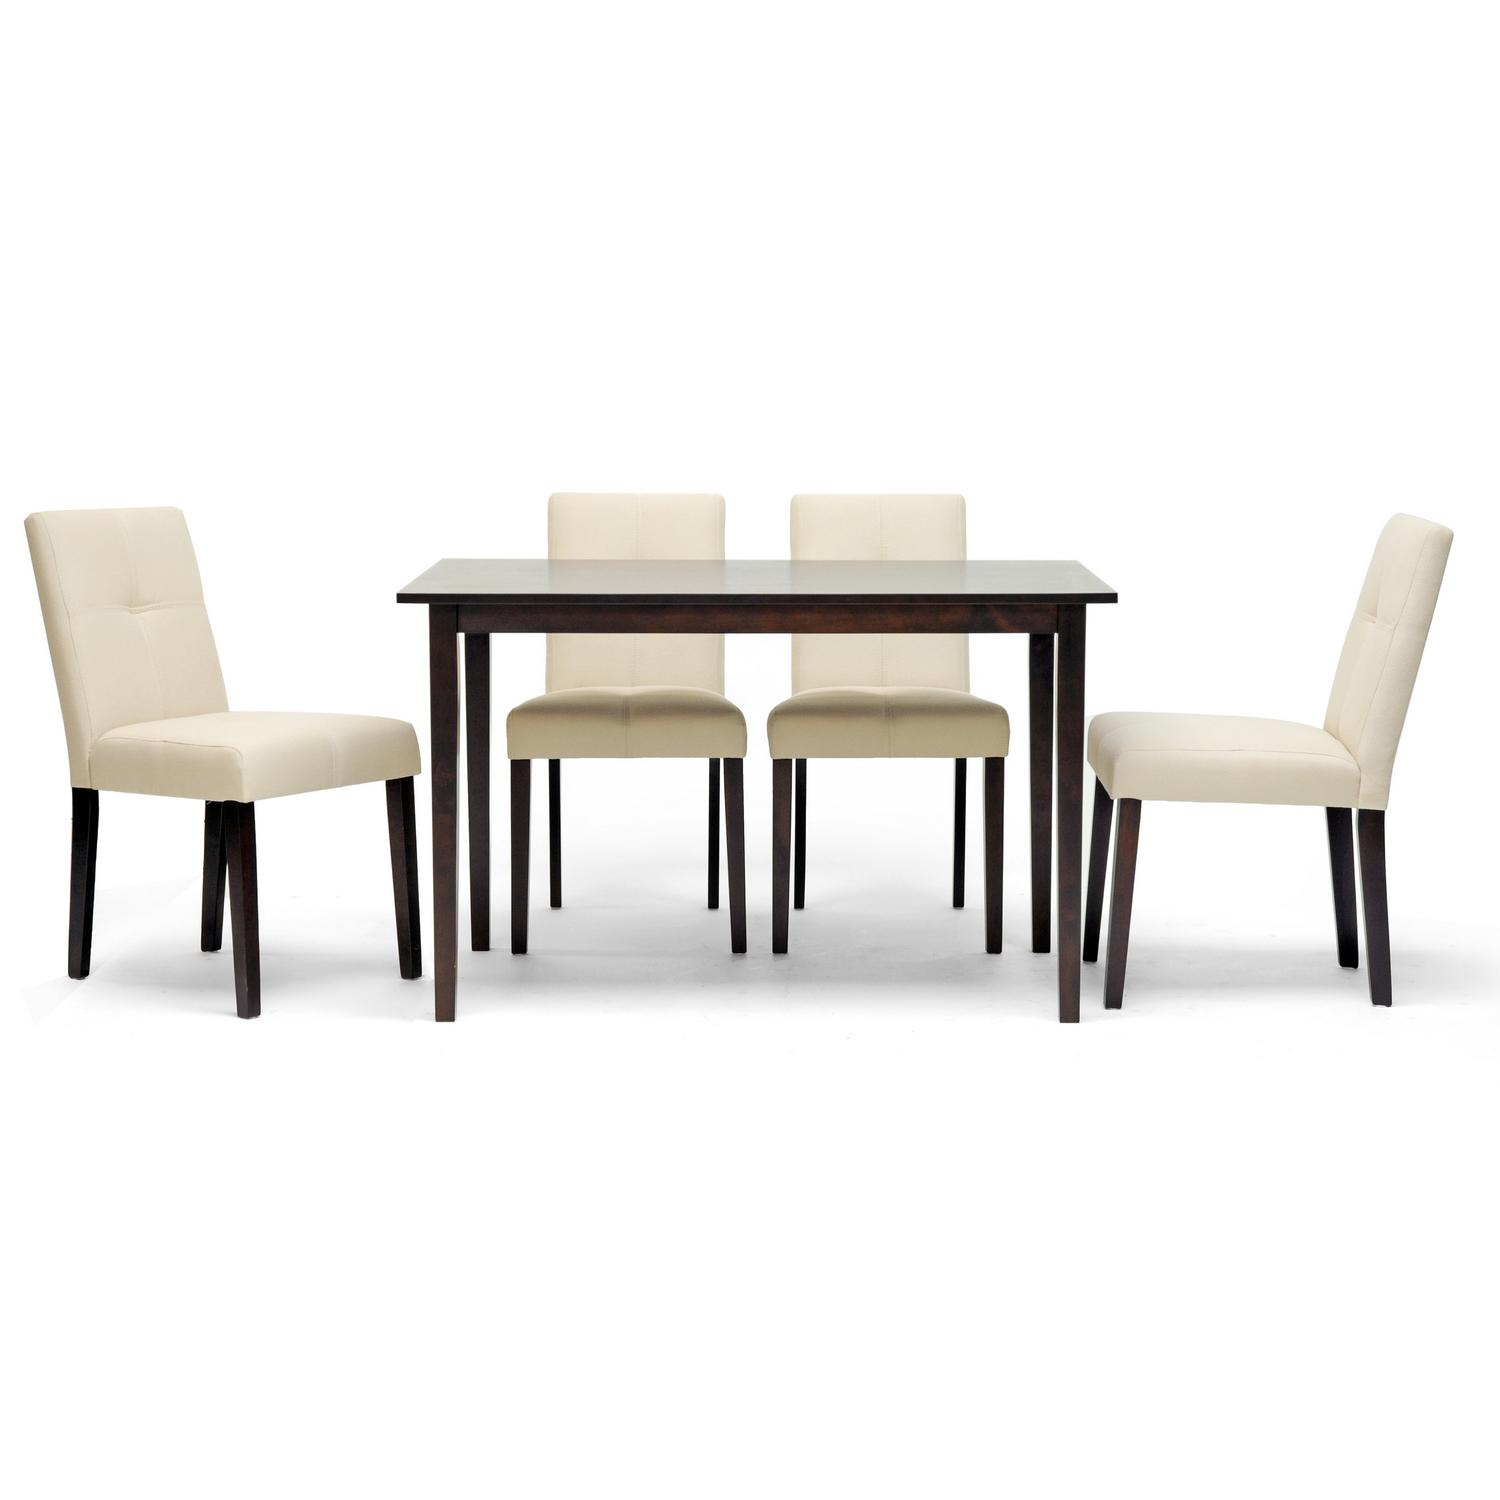 Baxton studio elsa brown wood 5 piece modern dining set for Contemporary dining set